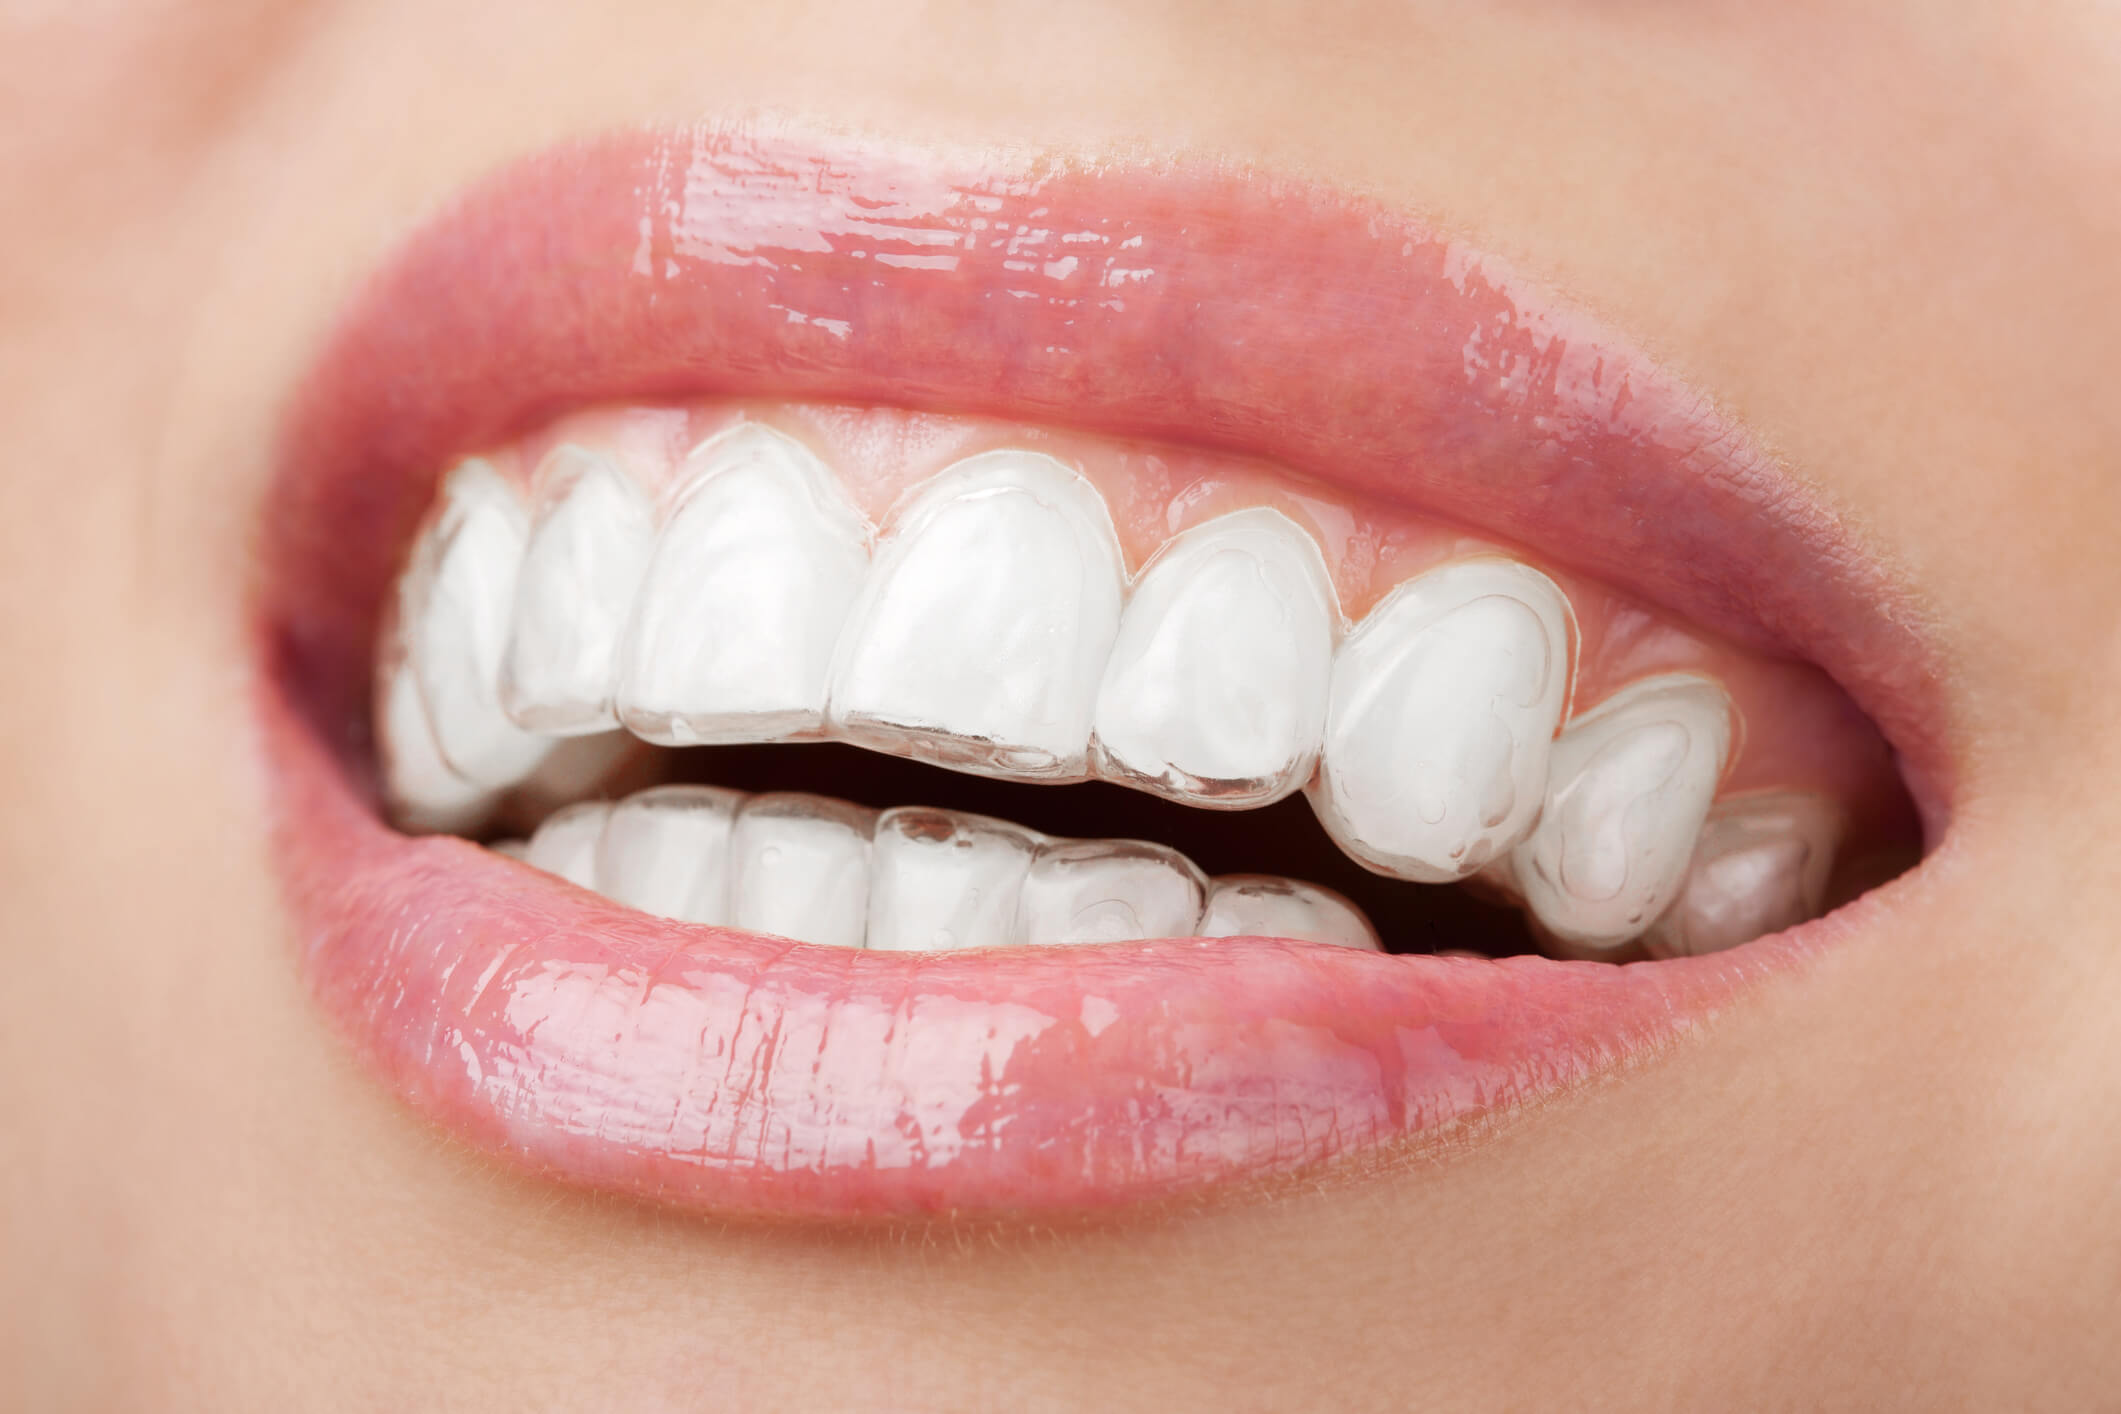 Why you should go for our invisalign dental care